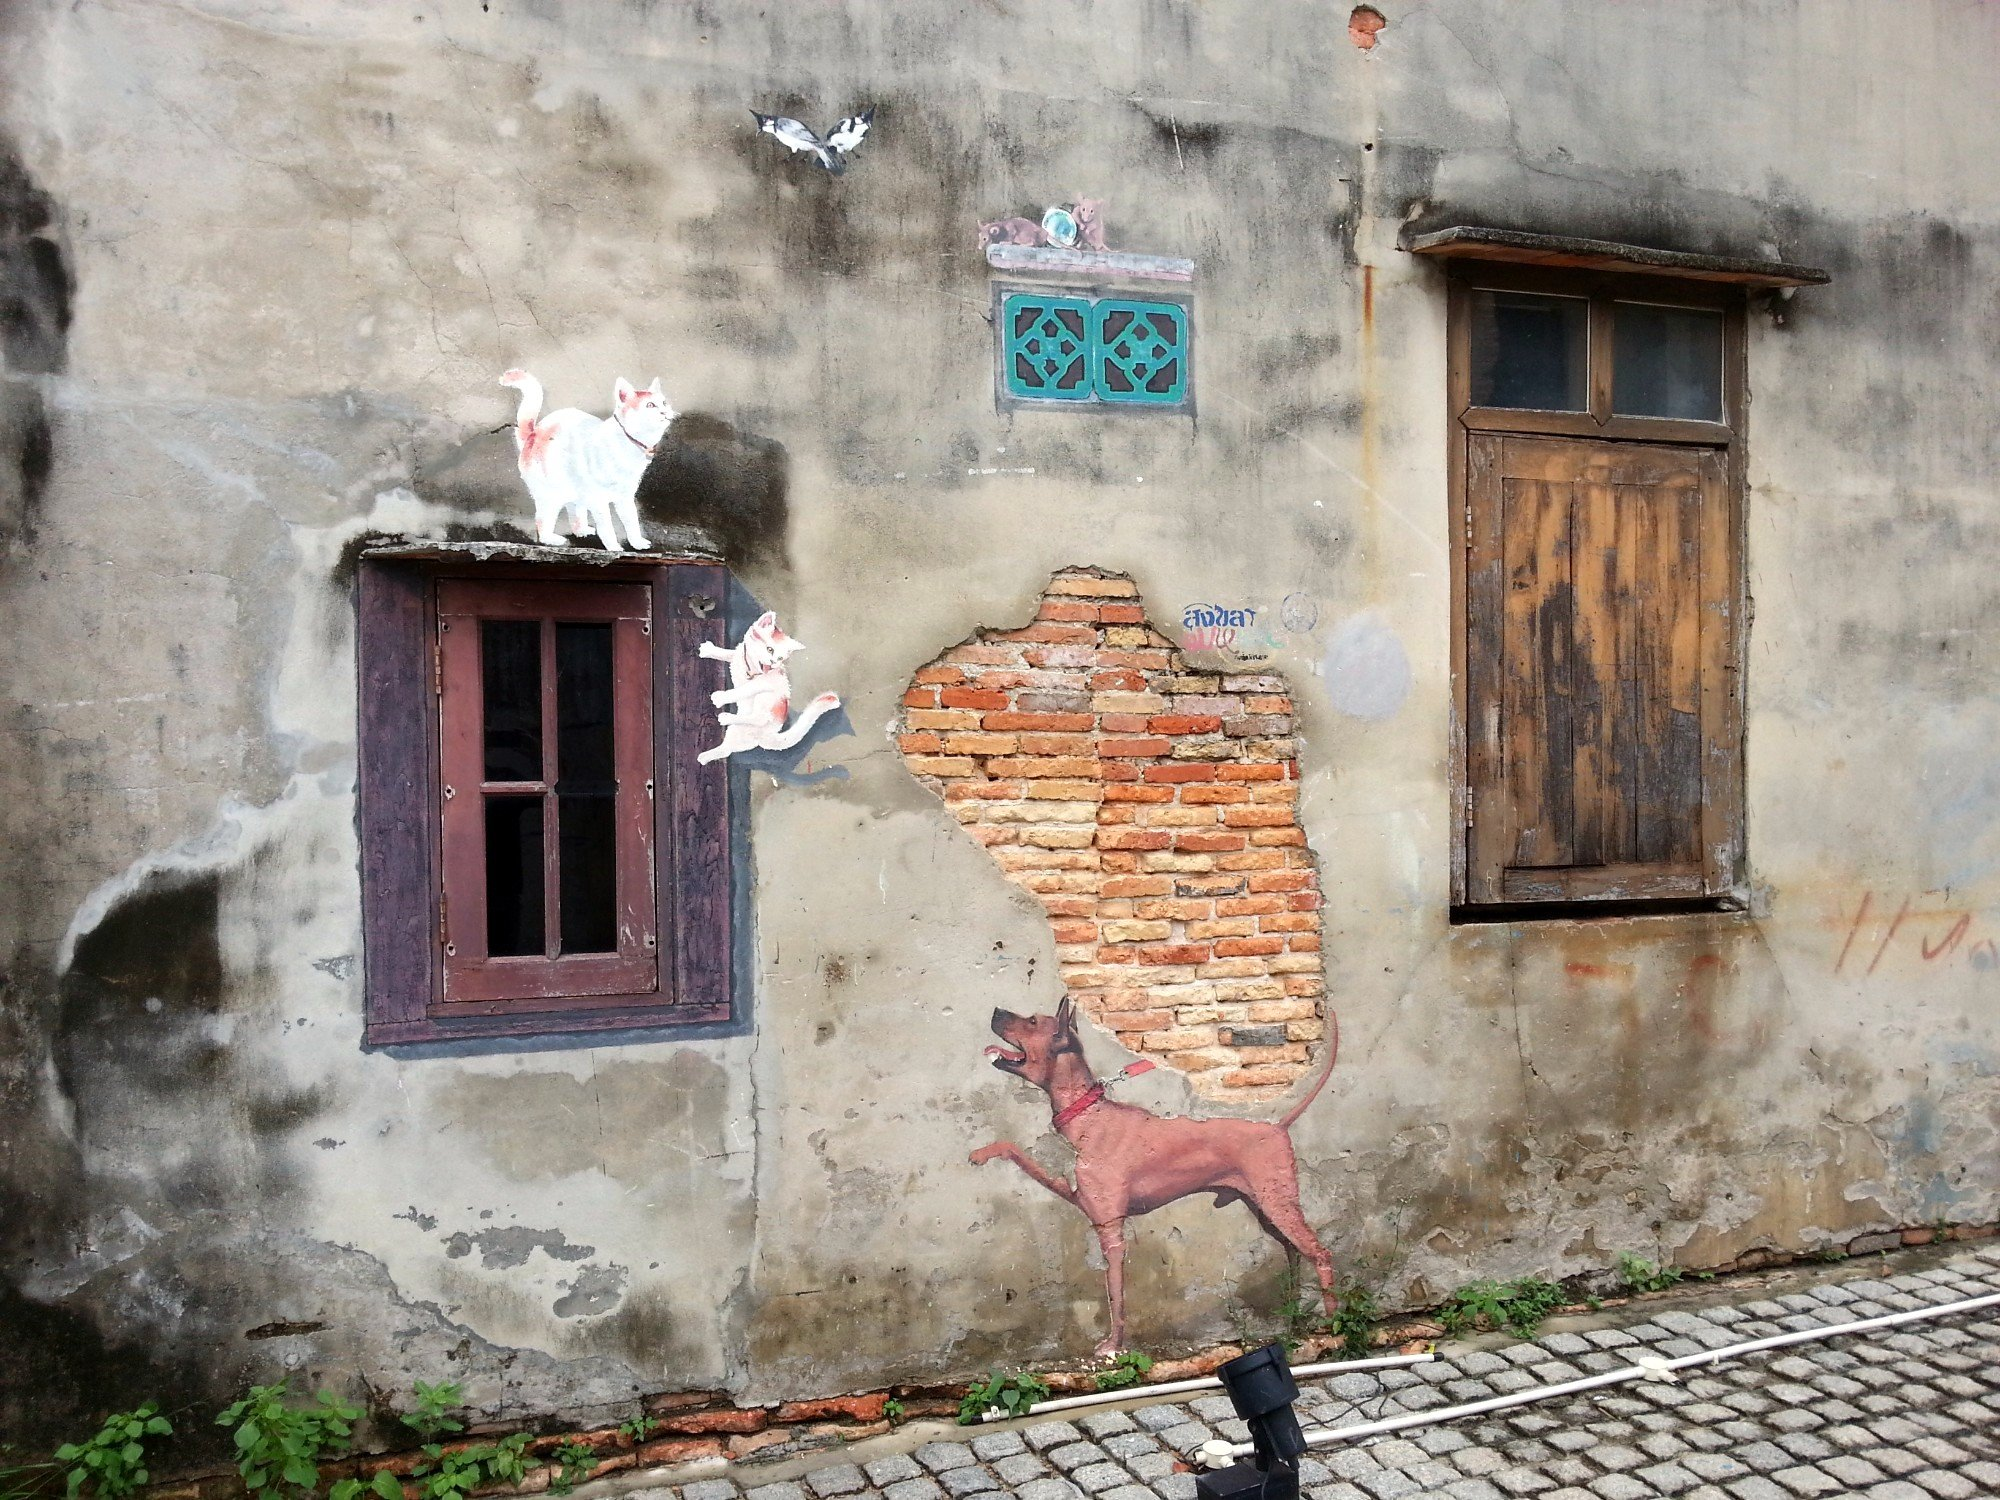 Dog chasing Cats mural in Songkhla